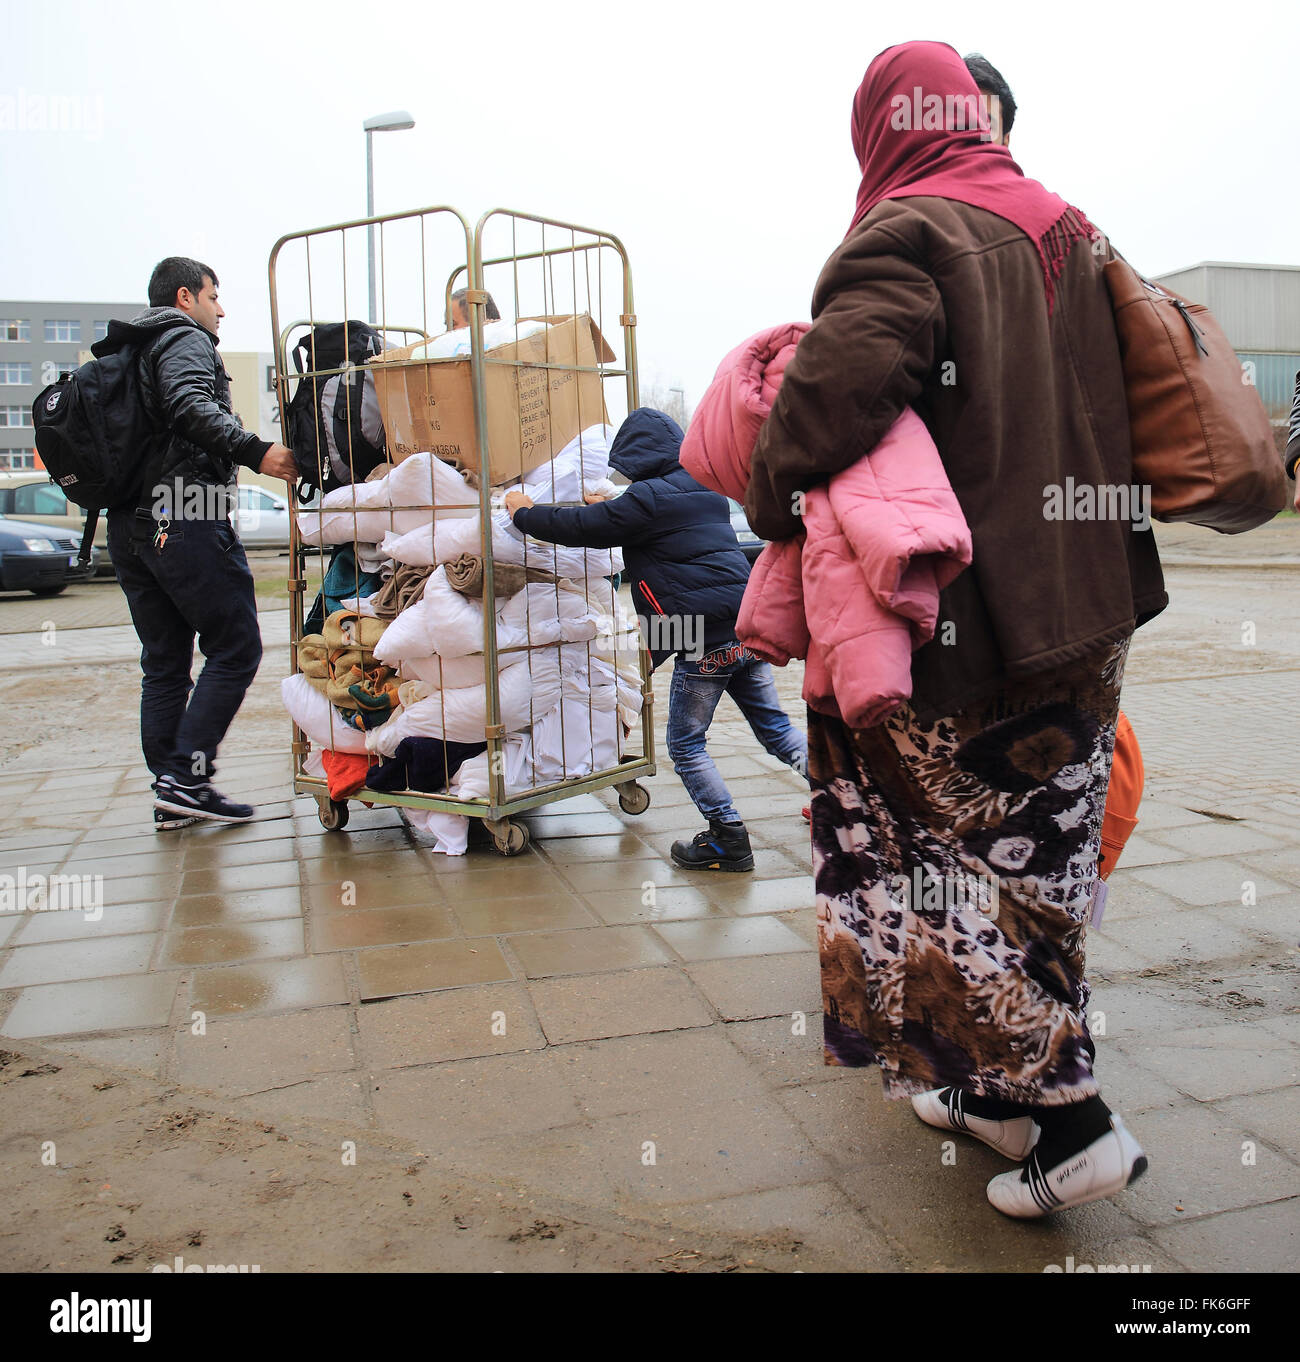 Halberstadt, Germany. 7th Mar, 2016. Refugees arriving at the new arrival centre for asylum seekers at the Central Stock Photo